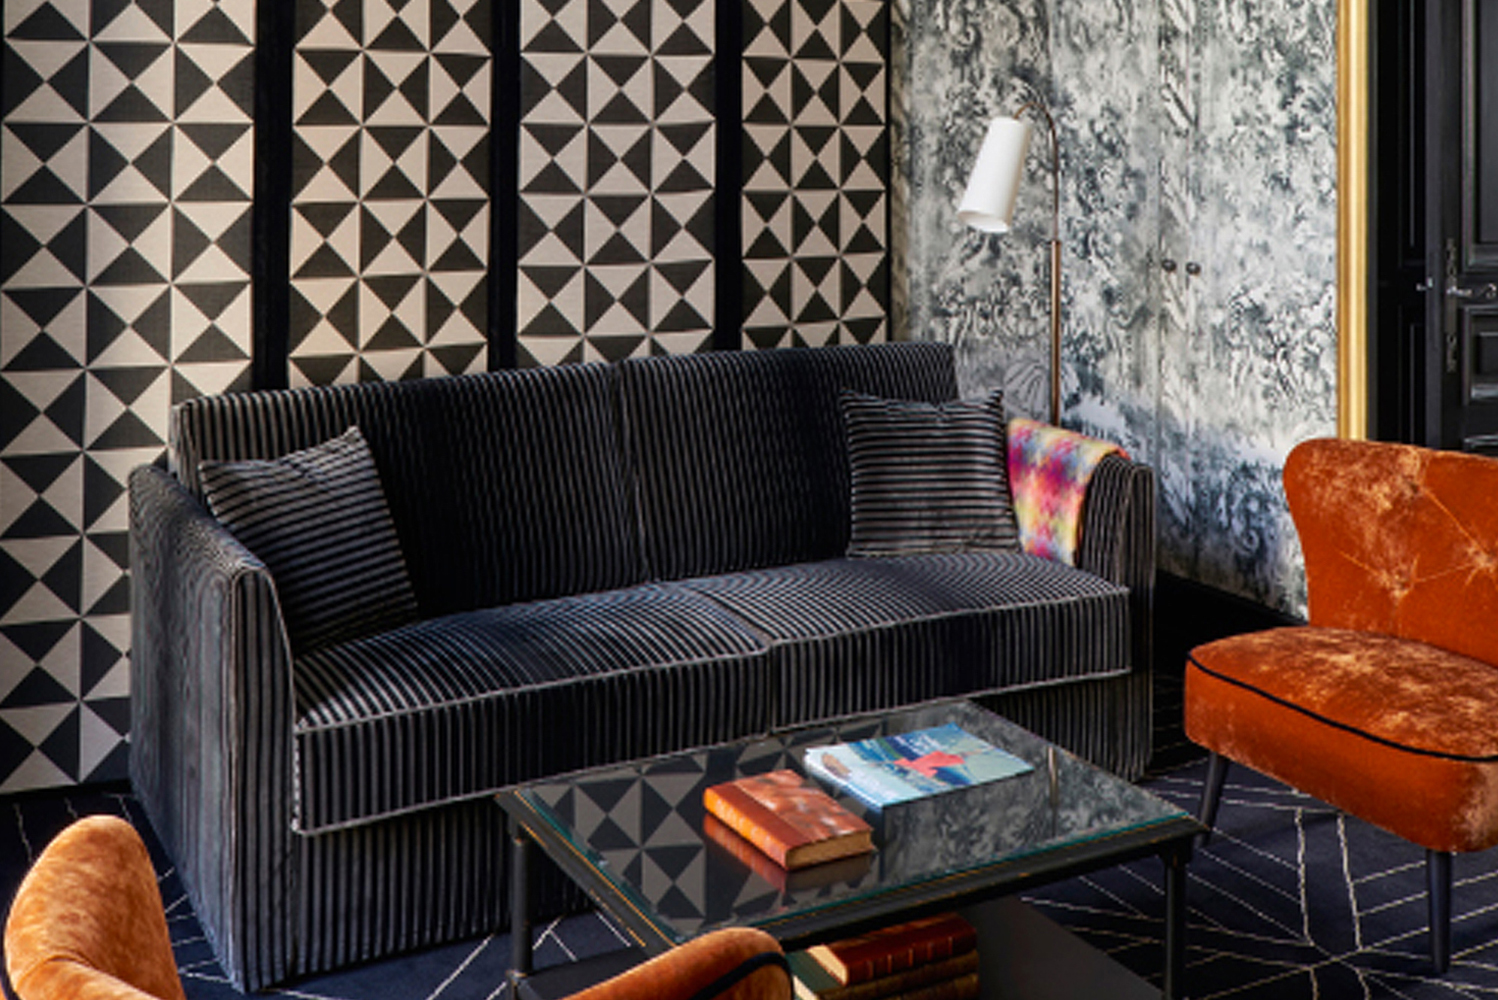 The new suites were designed by interior architect Didier Benderli.